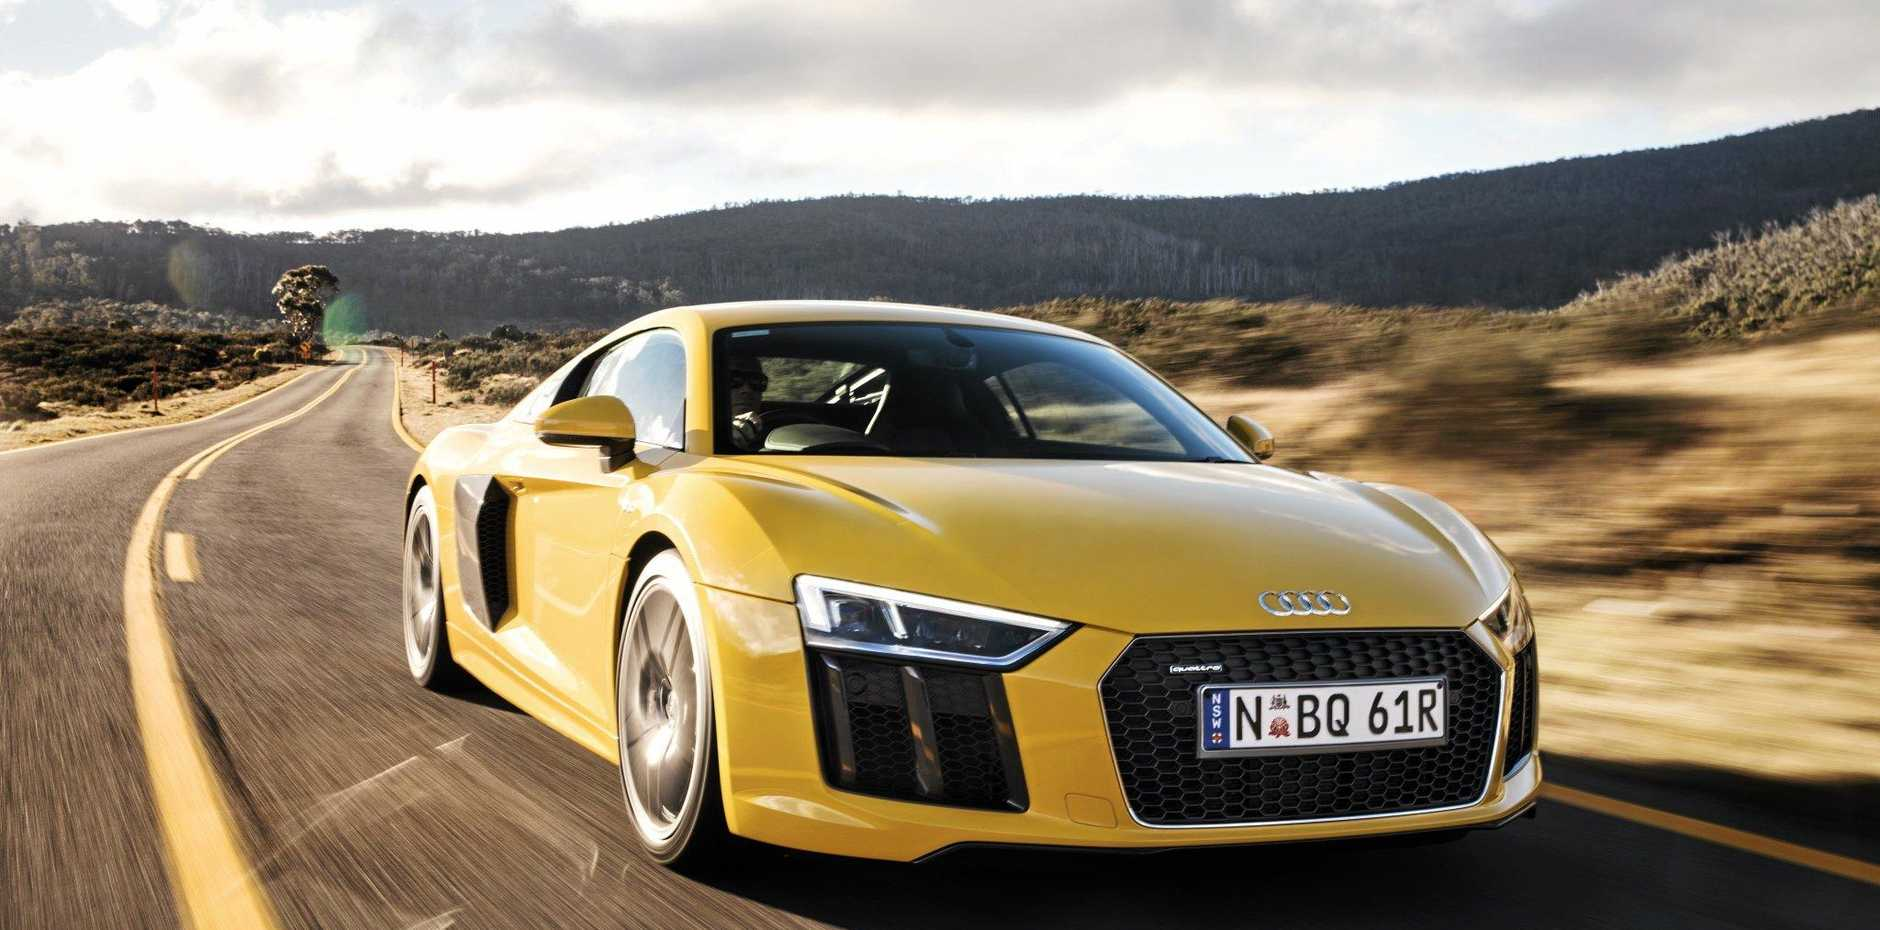 The 2016 Audi R8 V10 has arrived priced from $354,900.